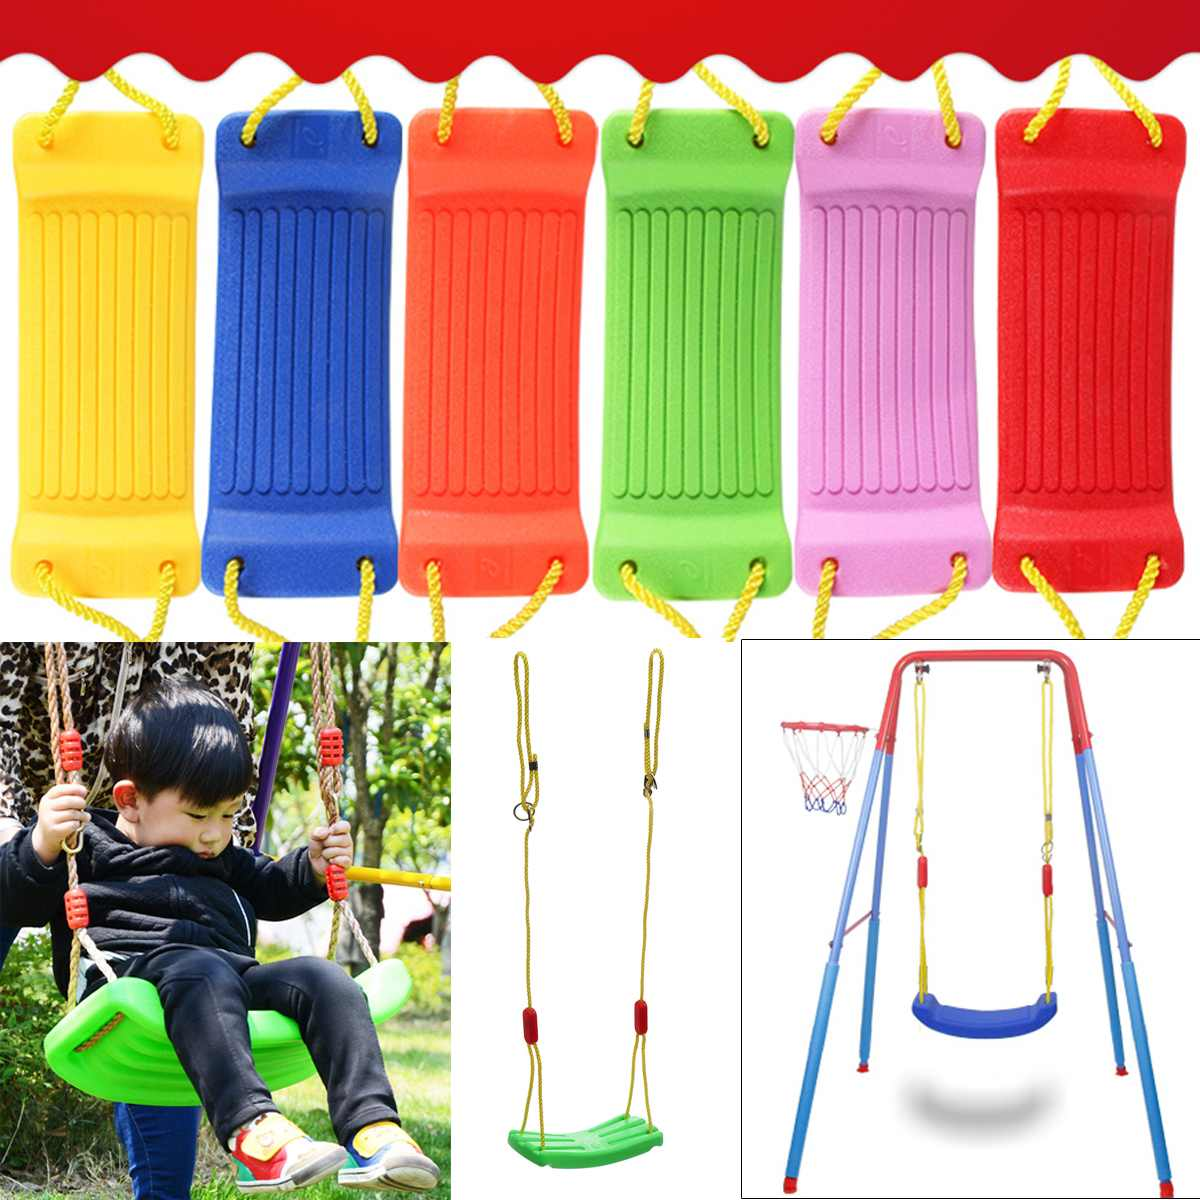 Baby Kids Children Toy Indoor Outdoor Garden Swing Seat U Type Adjustable Rope Plastic Candy Color 37x17cm Indoor SportBaby Kids Children Toy Indoor Outdoor Garden Swing Seat U Type Adjustable Rope Plastic Candy Color 37x17cm Indoor Sport